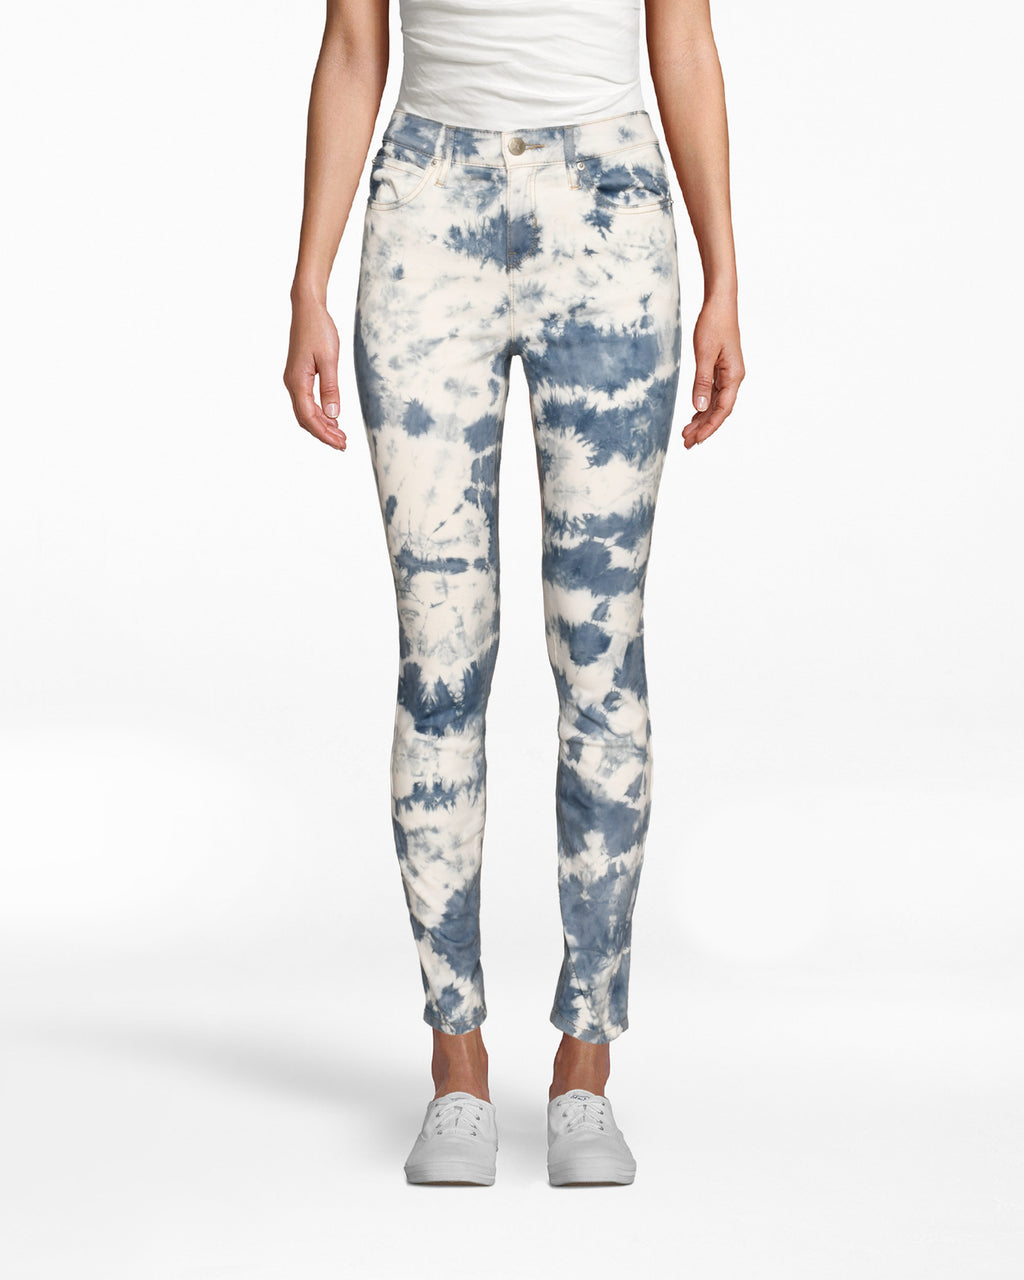 CP18726 - TIE DYE SKINNY JEANS - bottoms - denim - These statement jeans are designed in our best selling soho skinny silhouette and are hand dyed withbright blue dye. Add 1 line break Stylist Tip: Pair wi th the matching denim jacket for a laidback yet standout set.